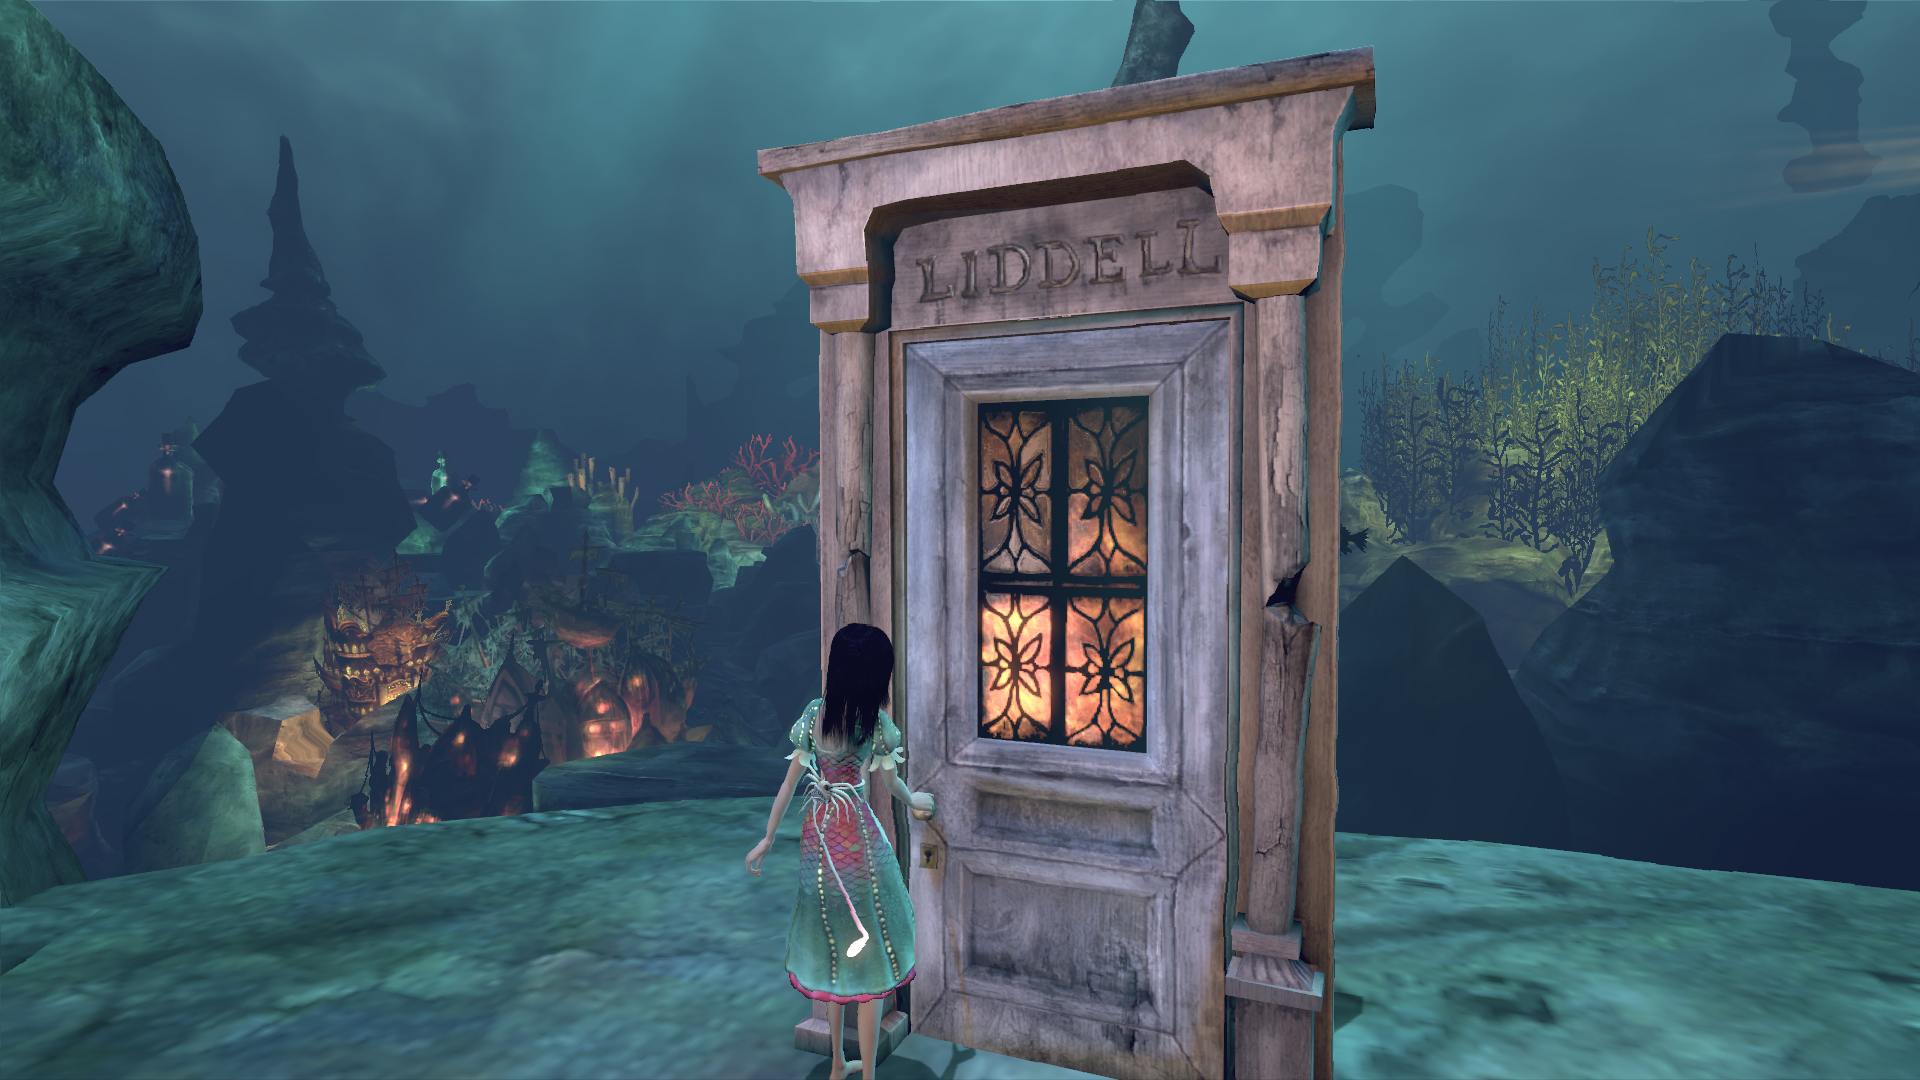 Alice Madness Returns HD26 by DomesticAbuseIsFunny Alice Madness Returns HD26 by DomesticAbuseIsFunny & Alice Madness Returns HD26 by DomesticAbuseIsFunny on DeviantArt